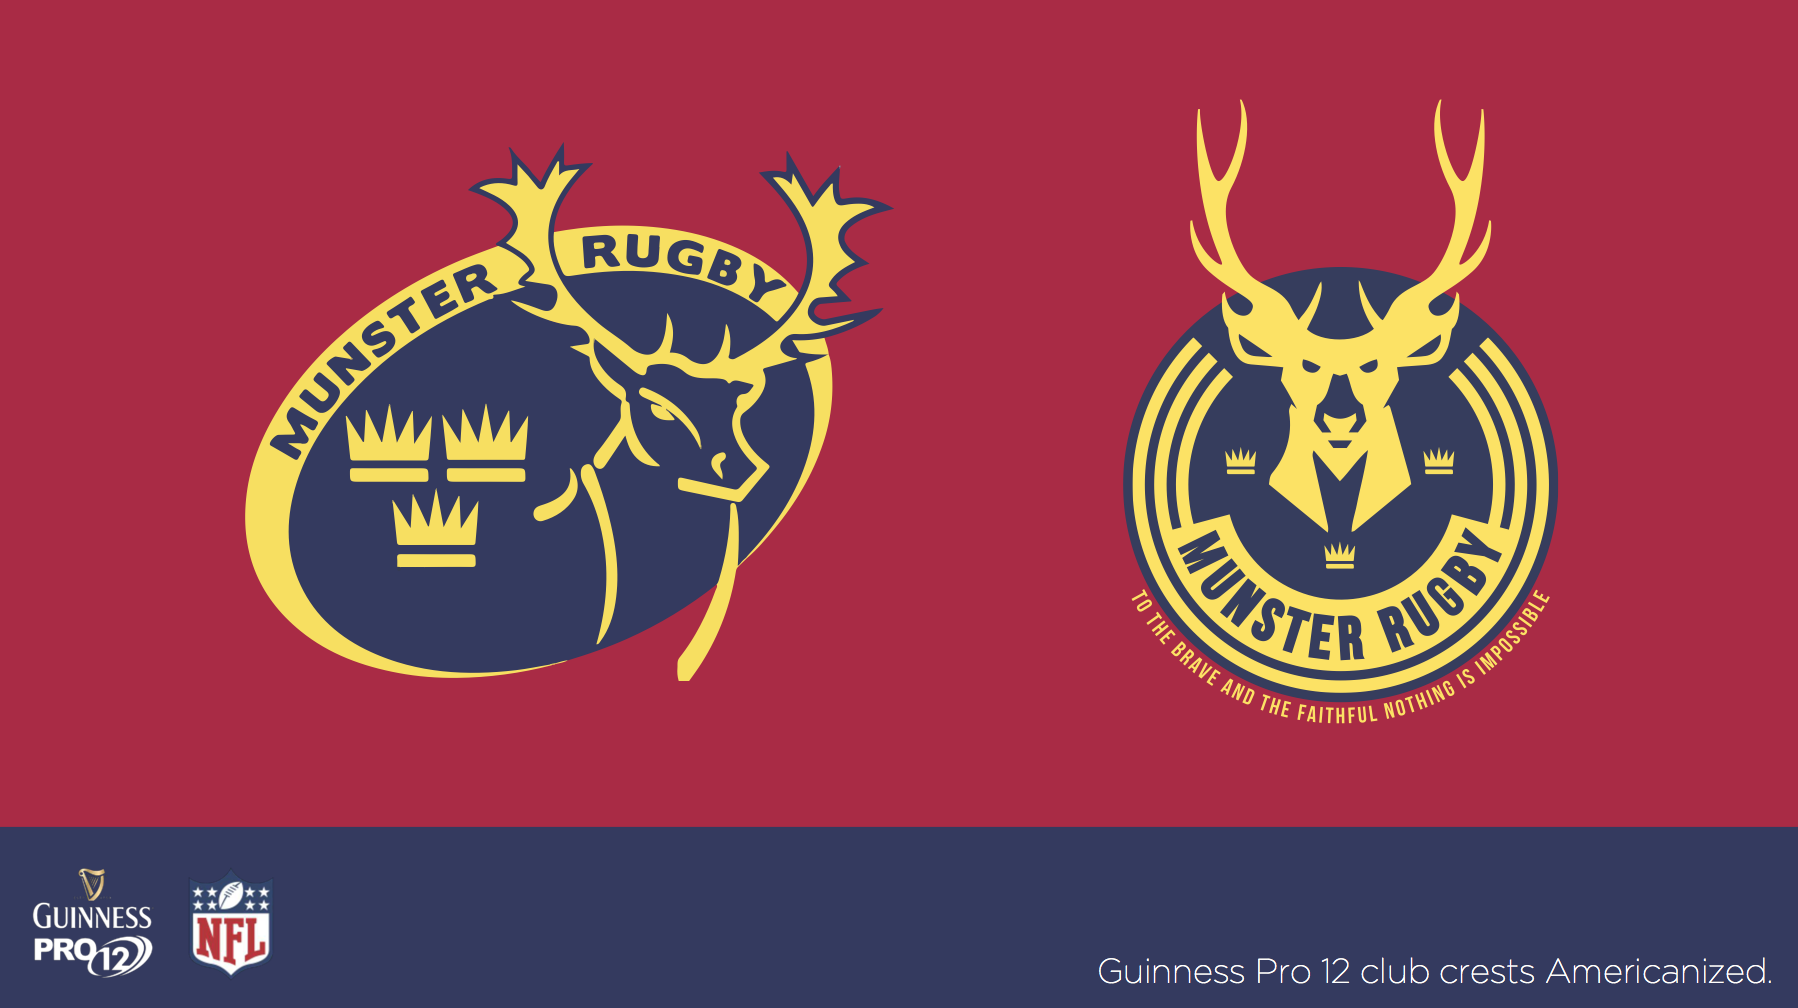 Someone redesigned every Guinness Pro 14 crest as NFL logos.